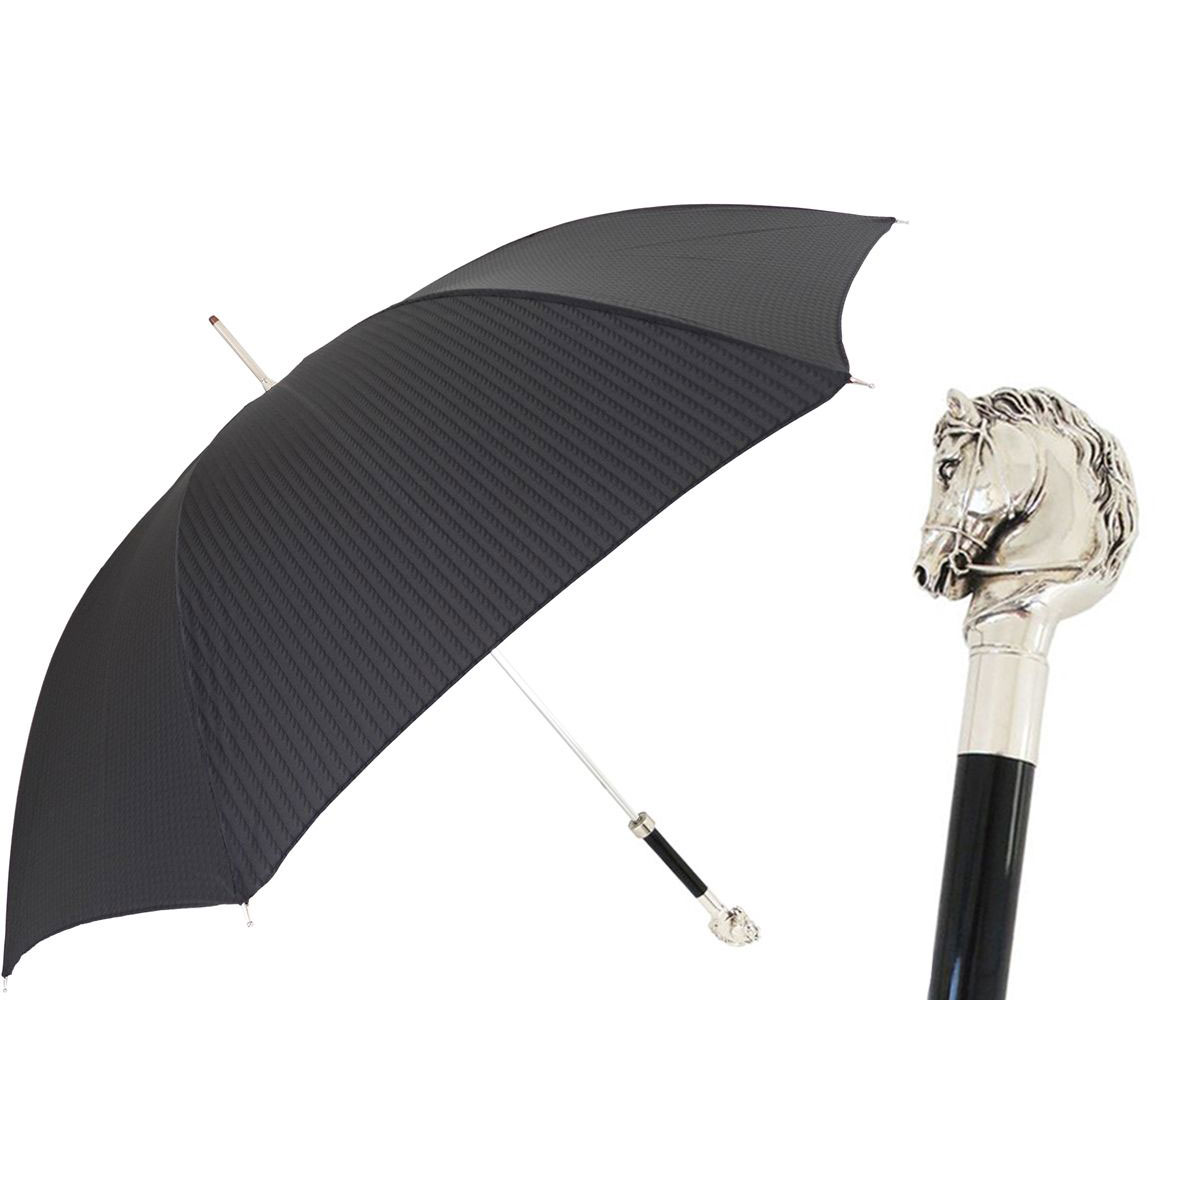 Pasotti Ombrelli Black Elegant Men's Umbrella - Silver Horse with Bridle